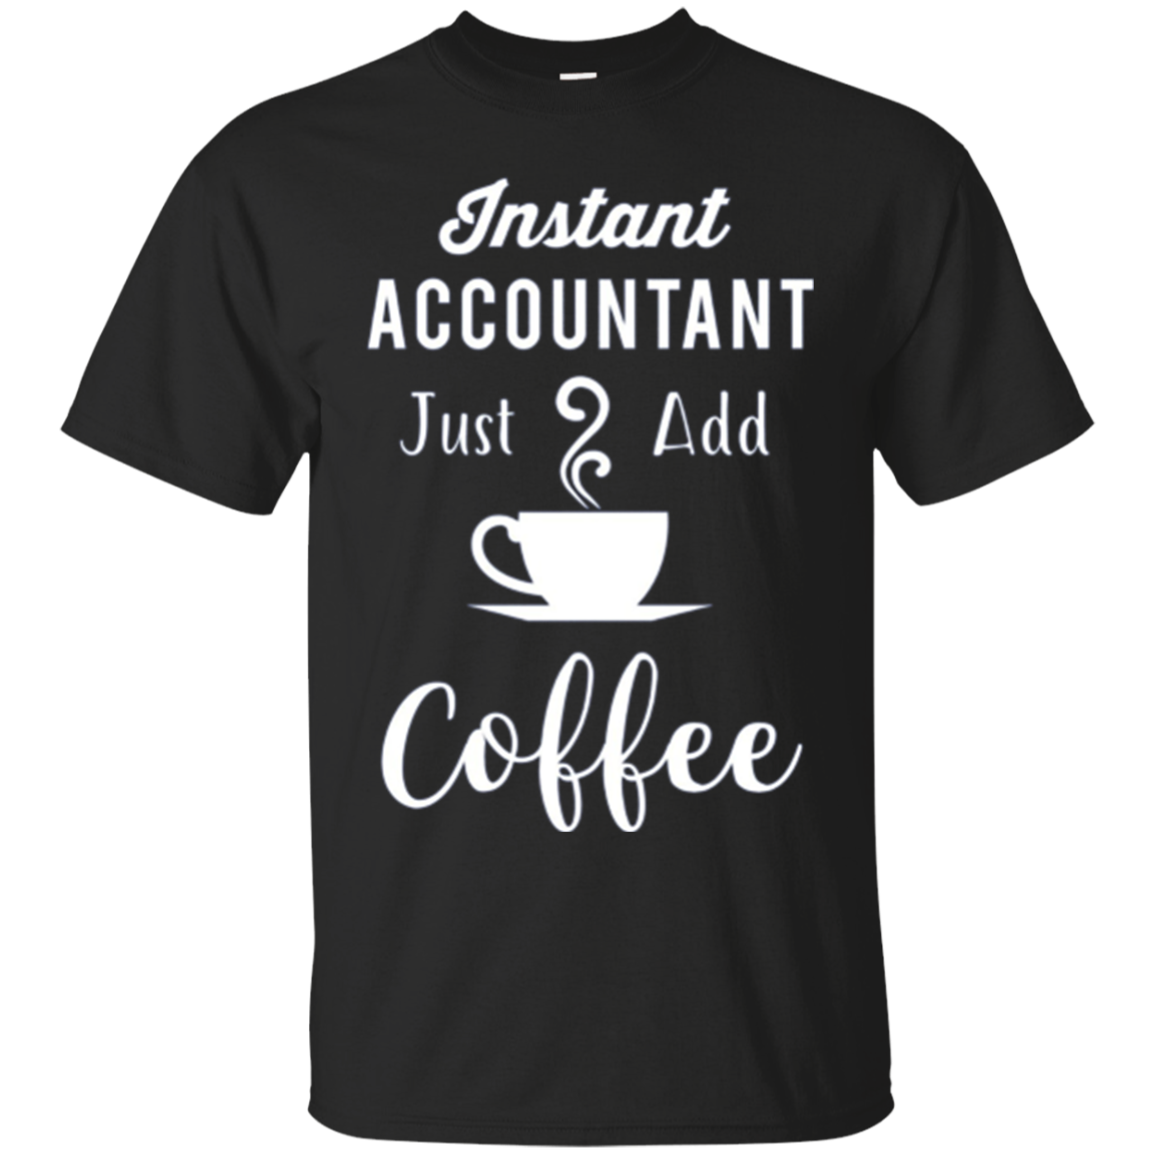 Funny Accounting CPA Long Sleeve Shirt - Instant Accountant